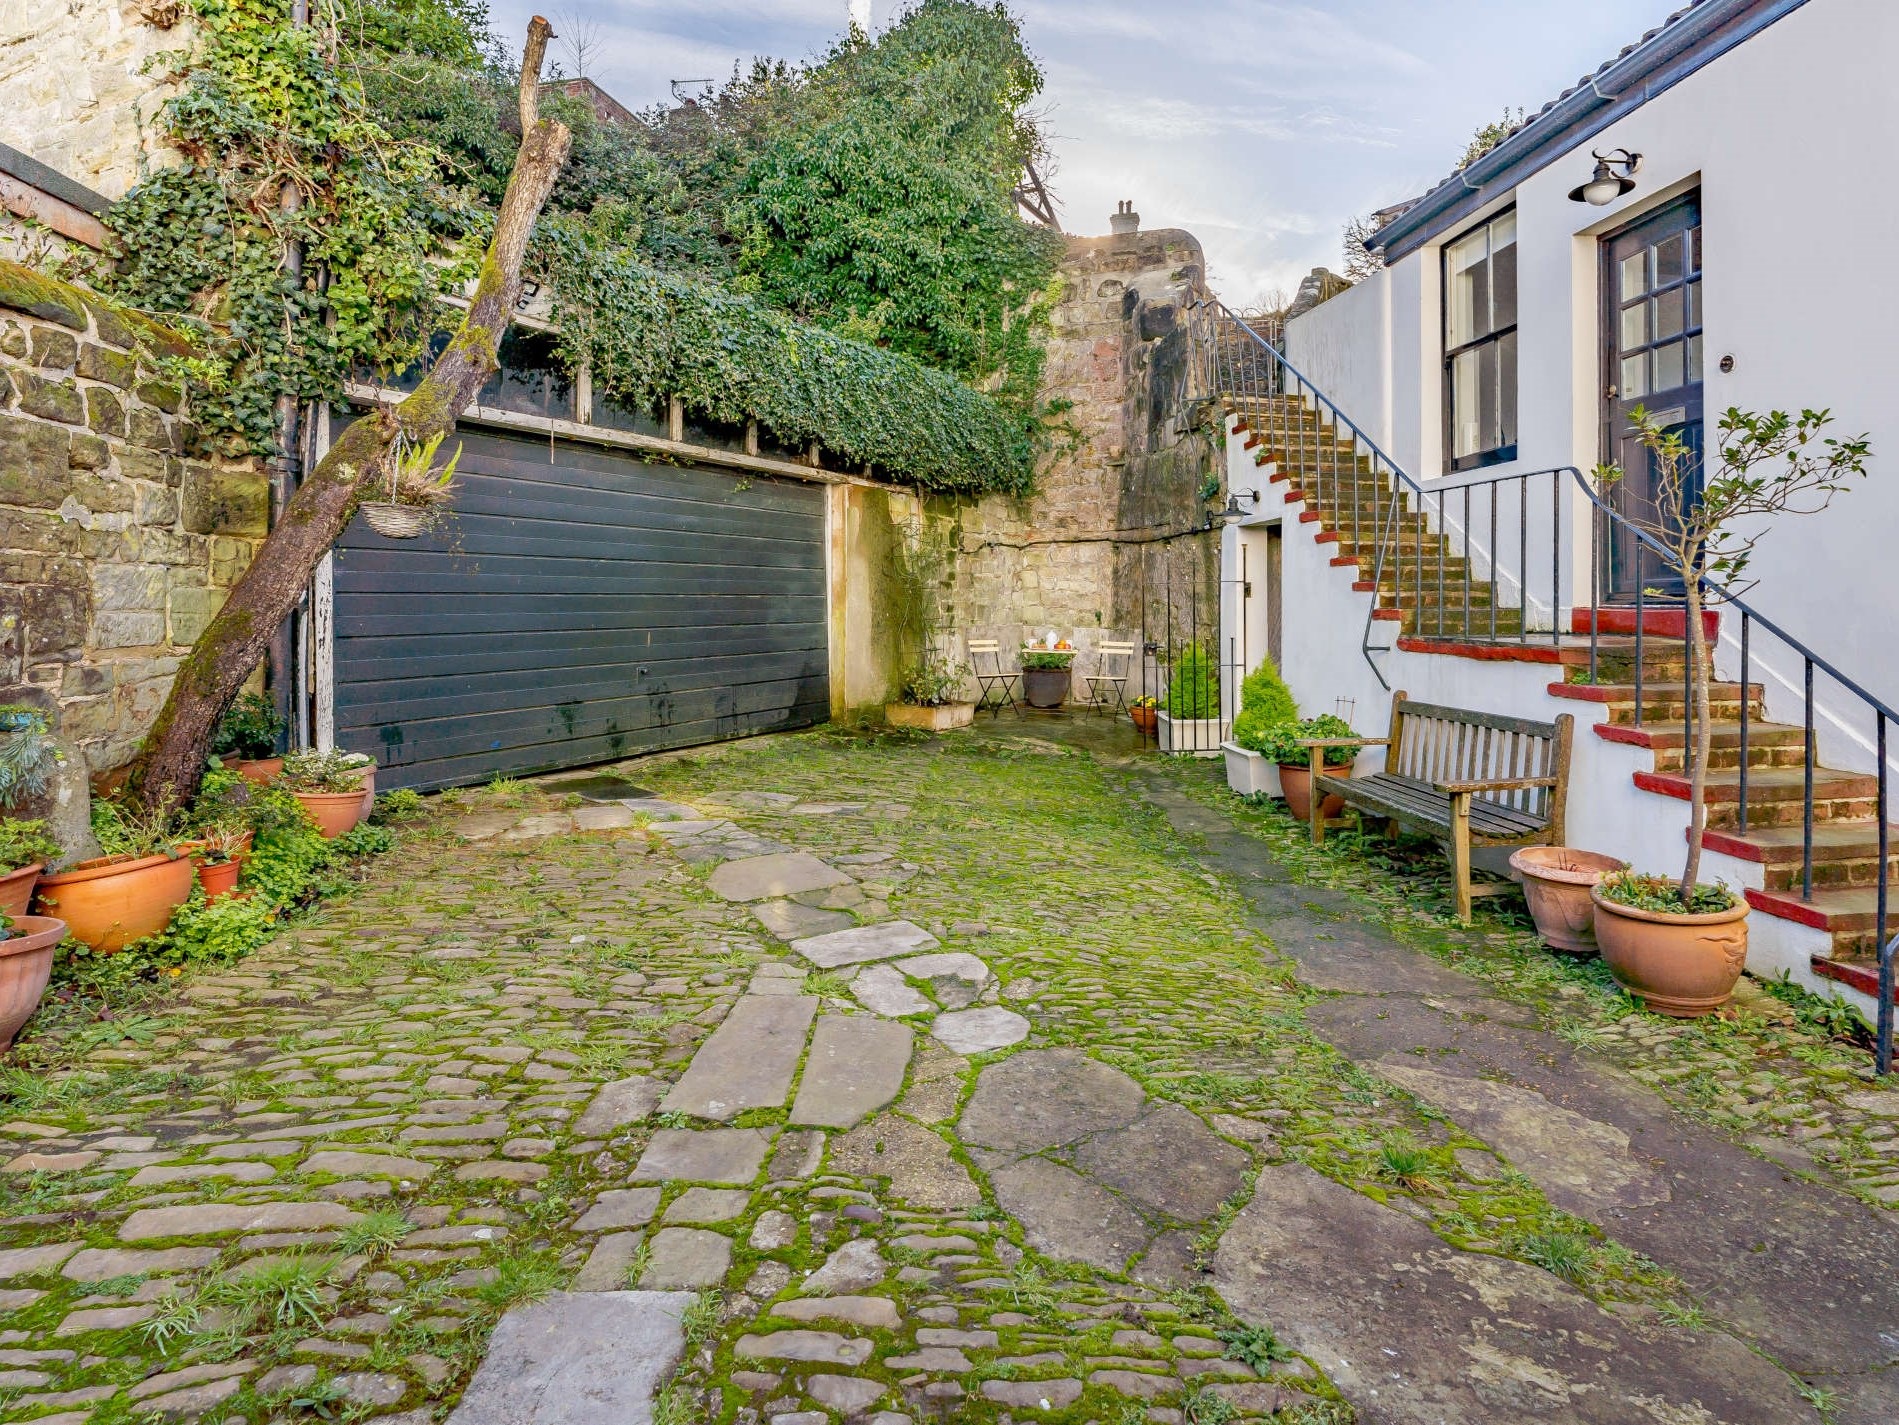 3 Bedroom Cottage in Sussex, South of England